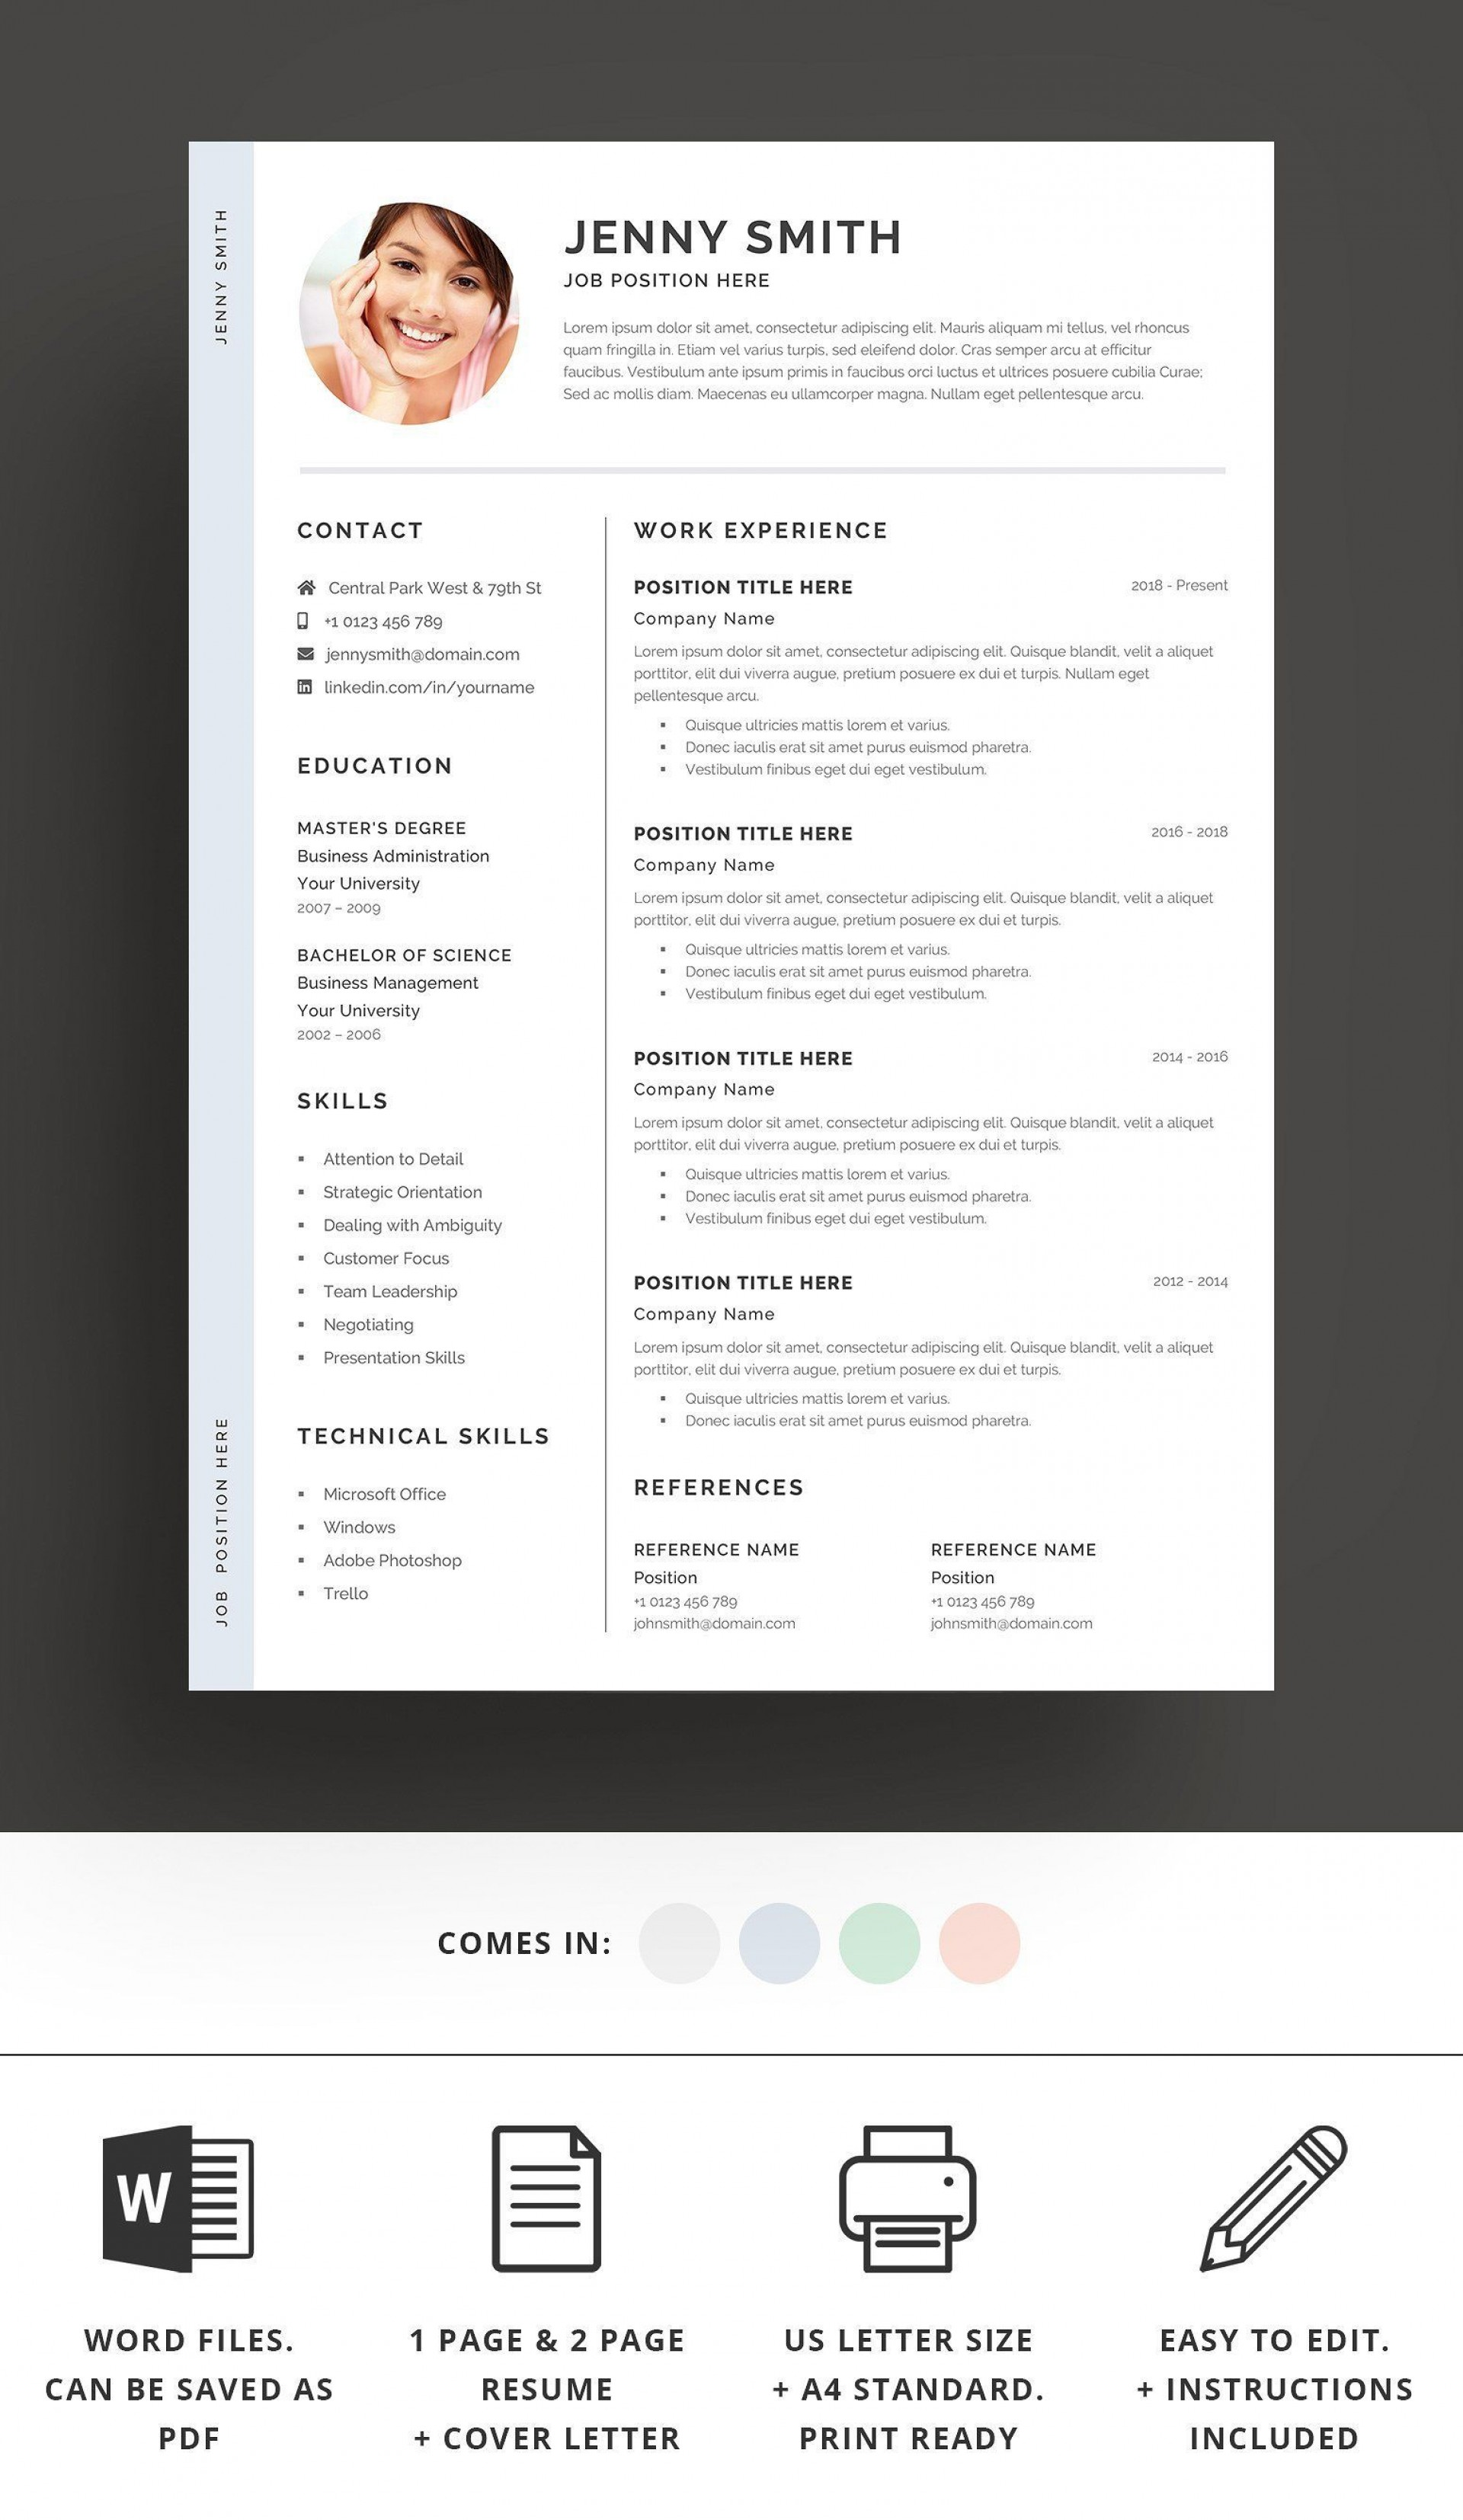 002 Top Resume Template Word 2016 High Definition  Cv Professional1920